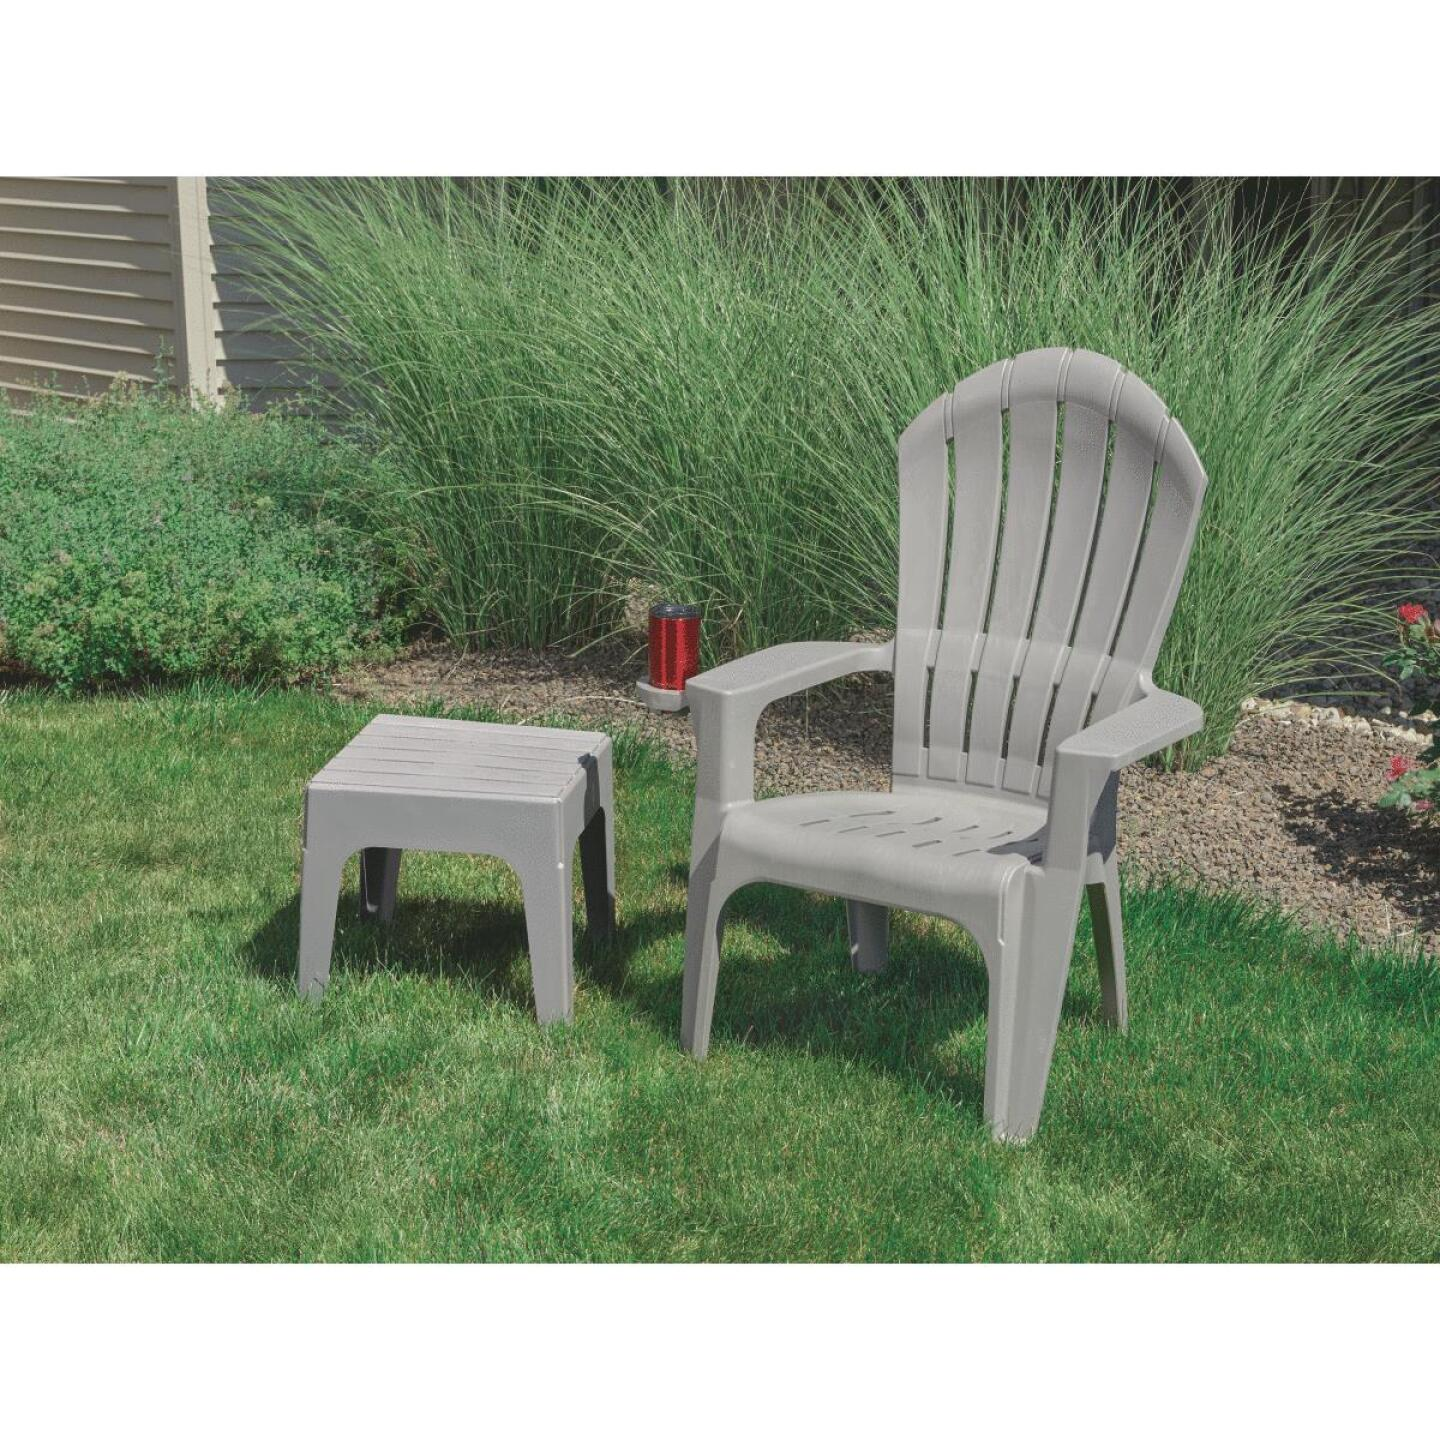 Adams Big Easy Gray Resin Adirondack Chair Image 2